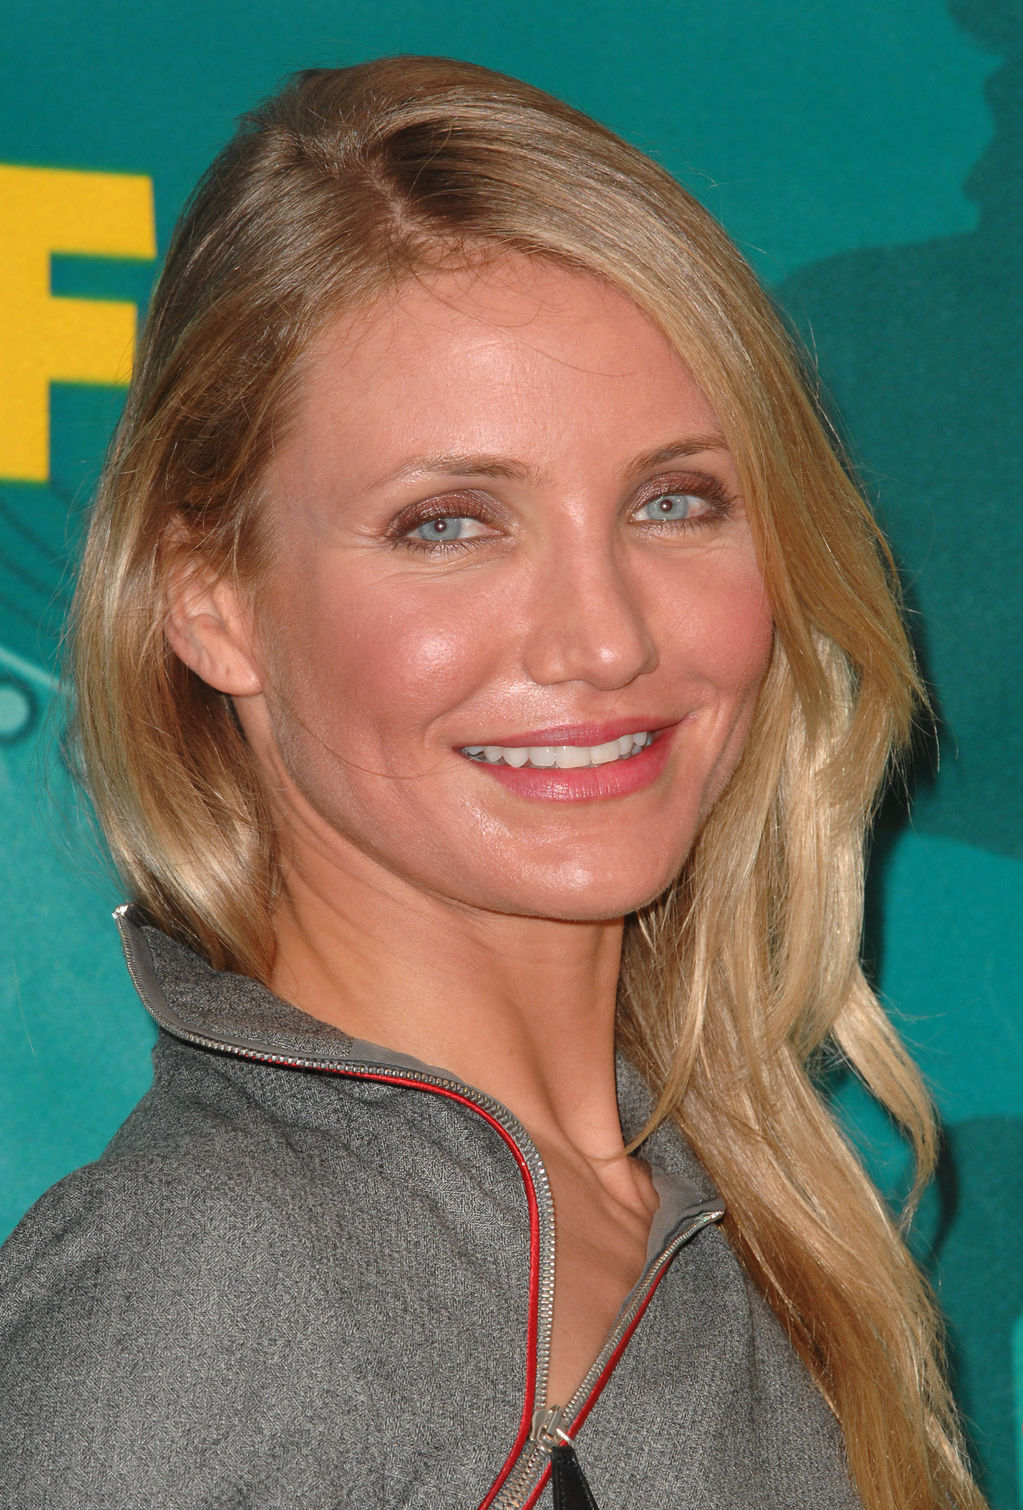 Cameron Diaz Before and After Photos